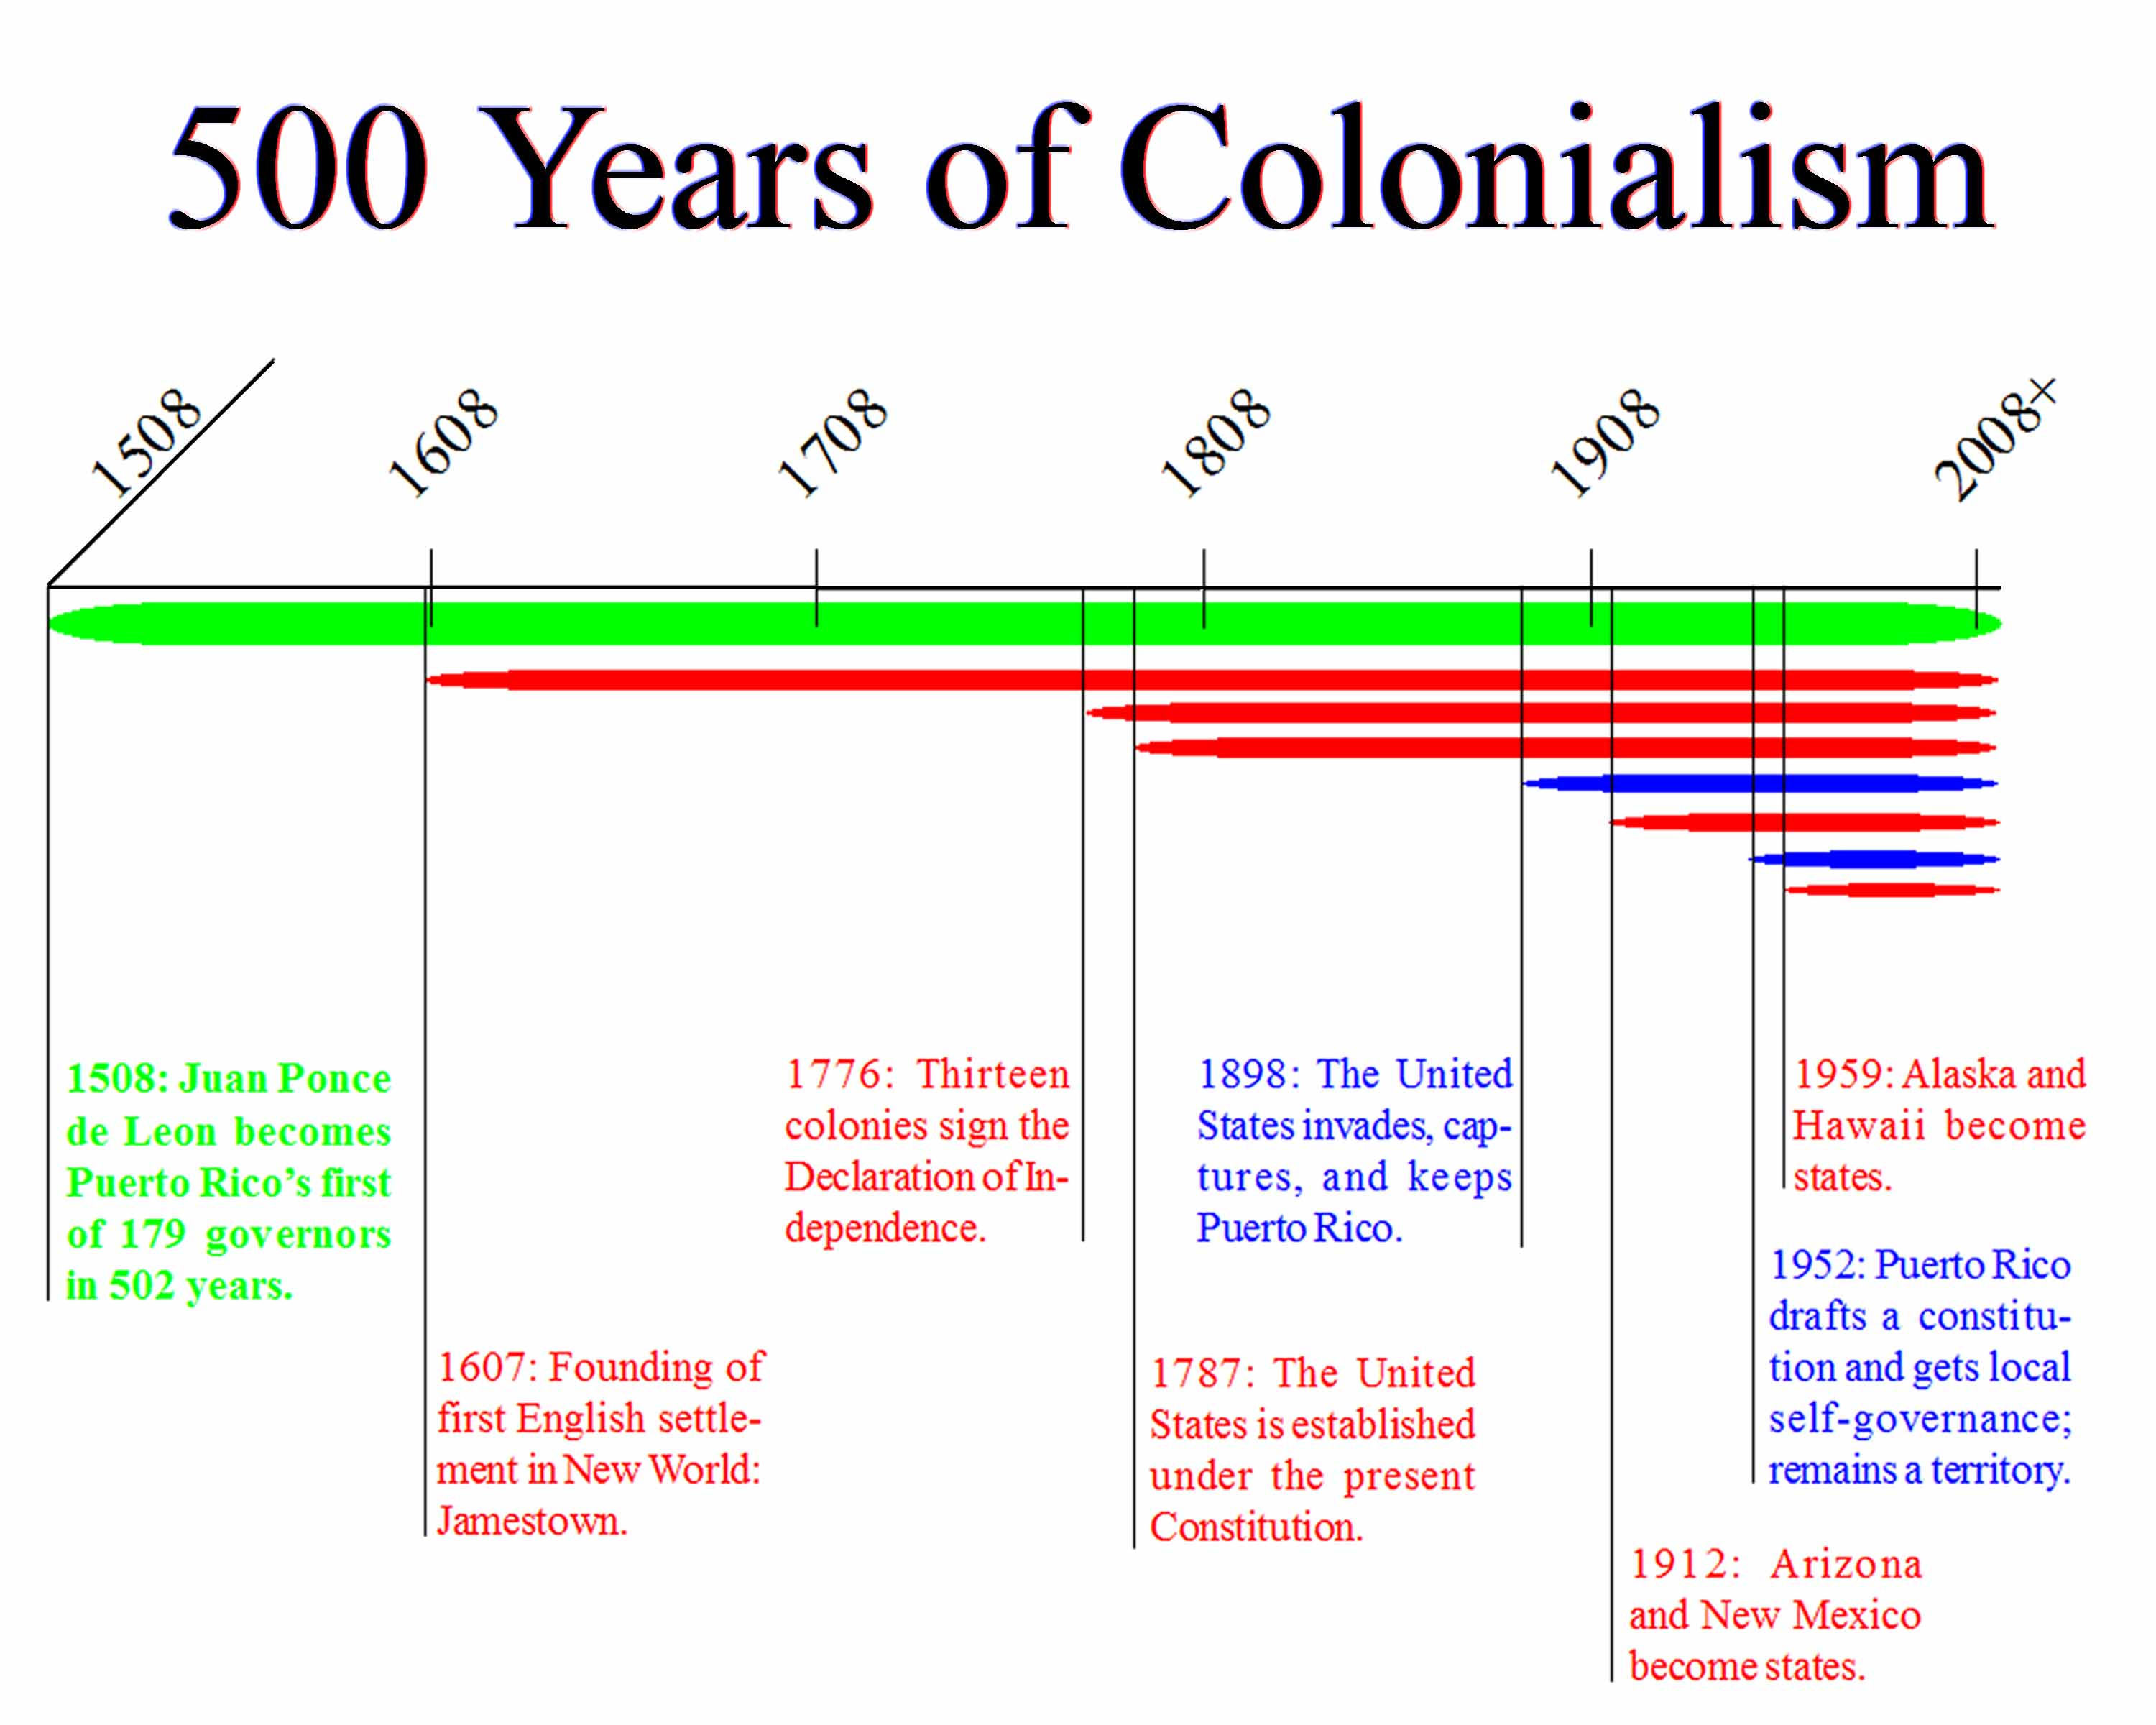 500 Years Of Colonialism Timeline